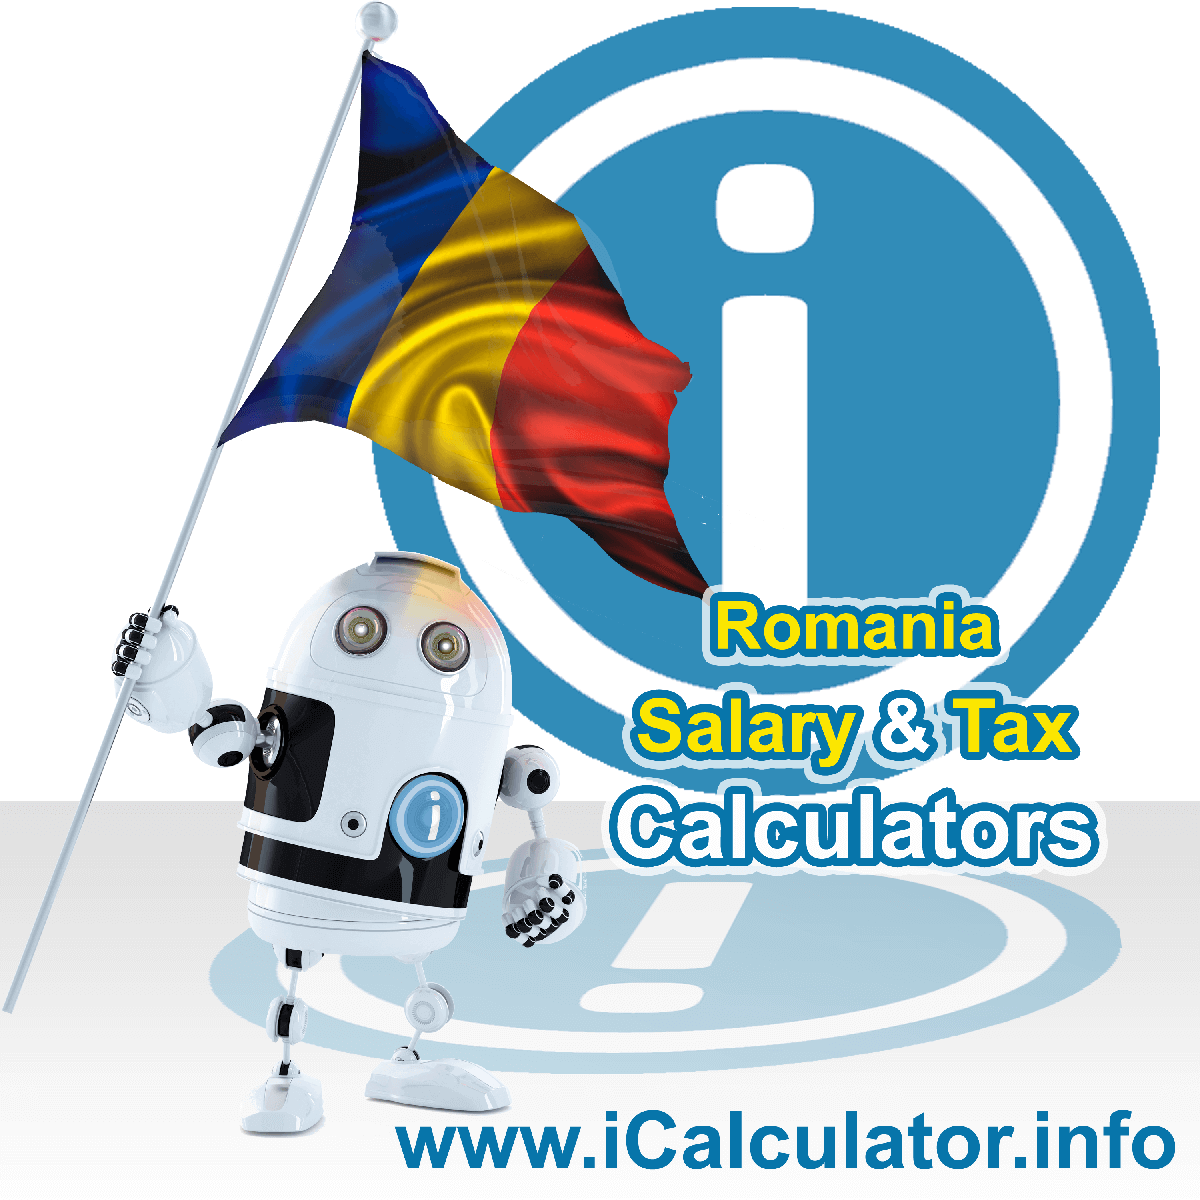 Romania Wage Calculator. This image shows the Romania flag and information relating to the tax formula for the Romania Tax Calculator